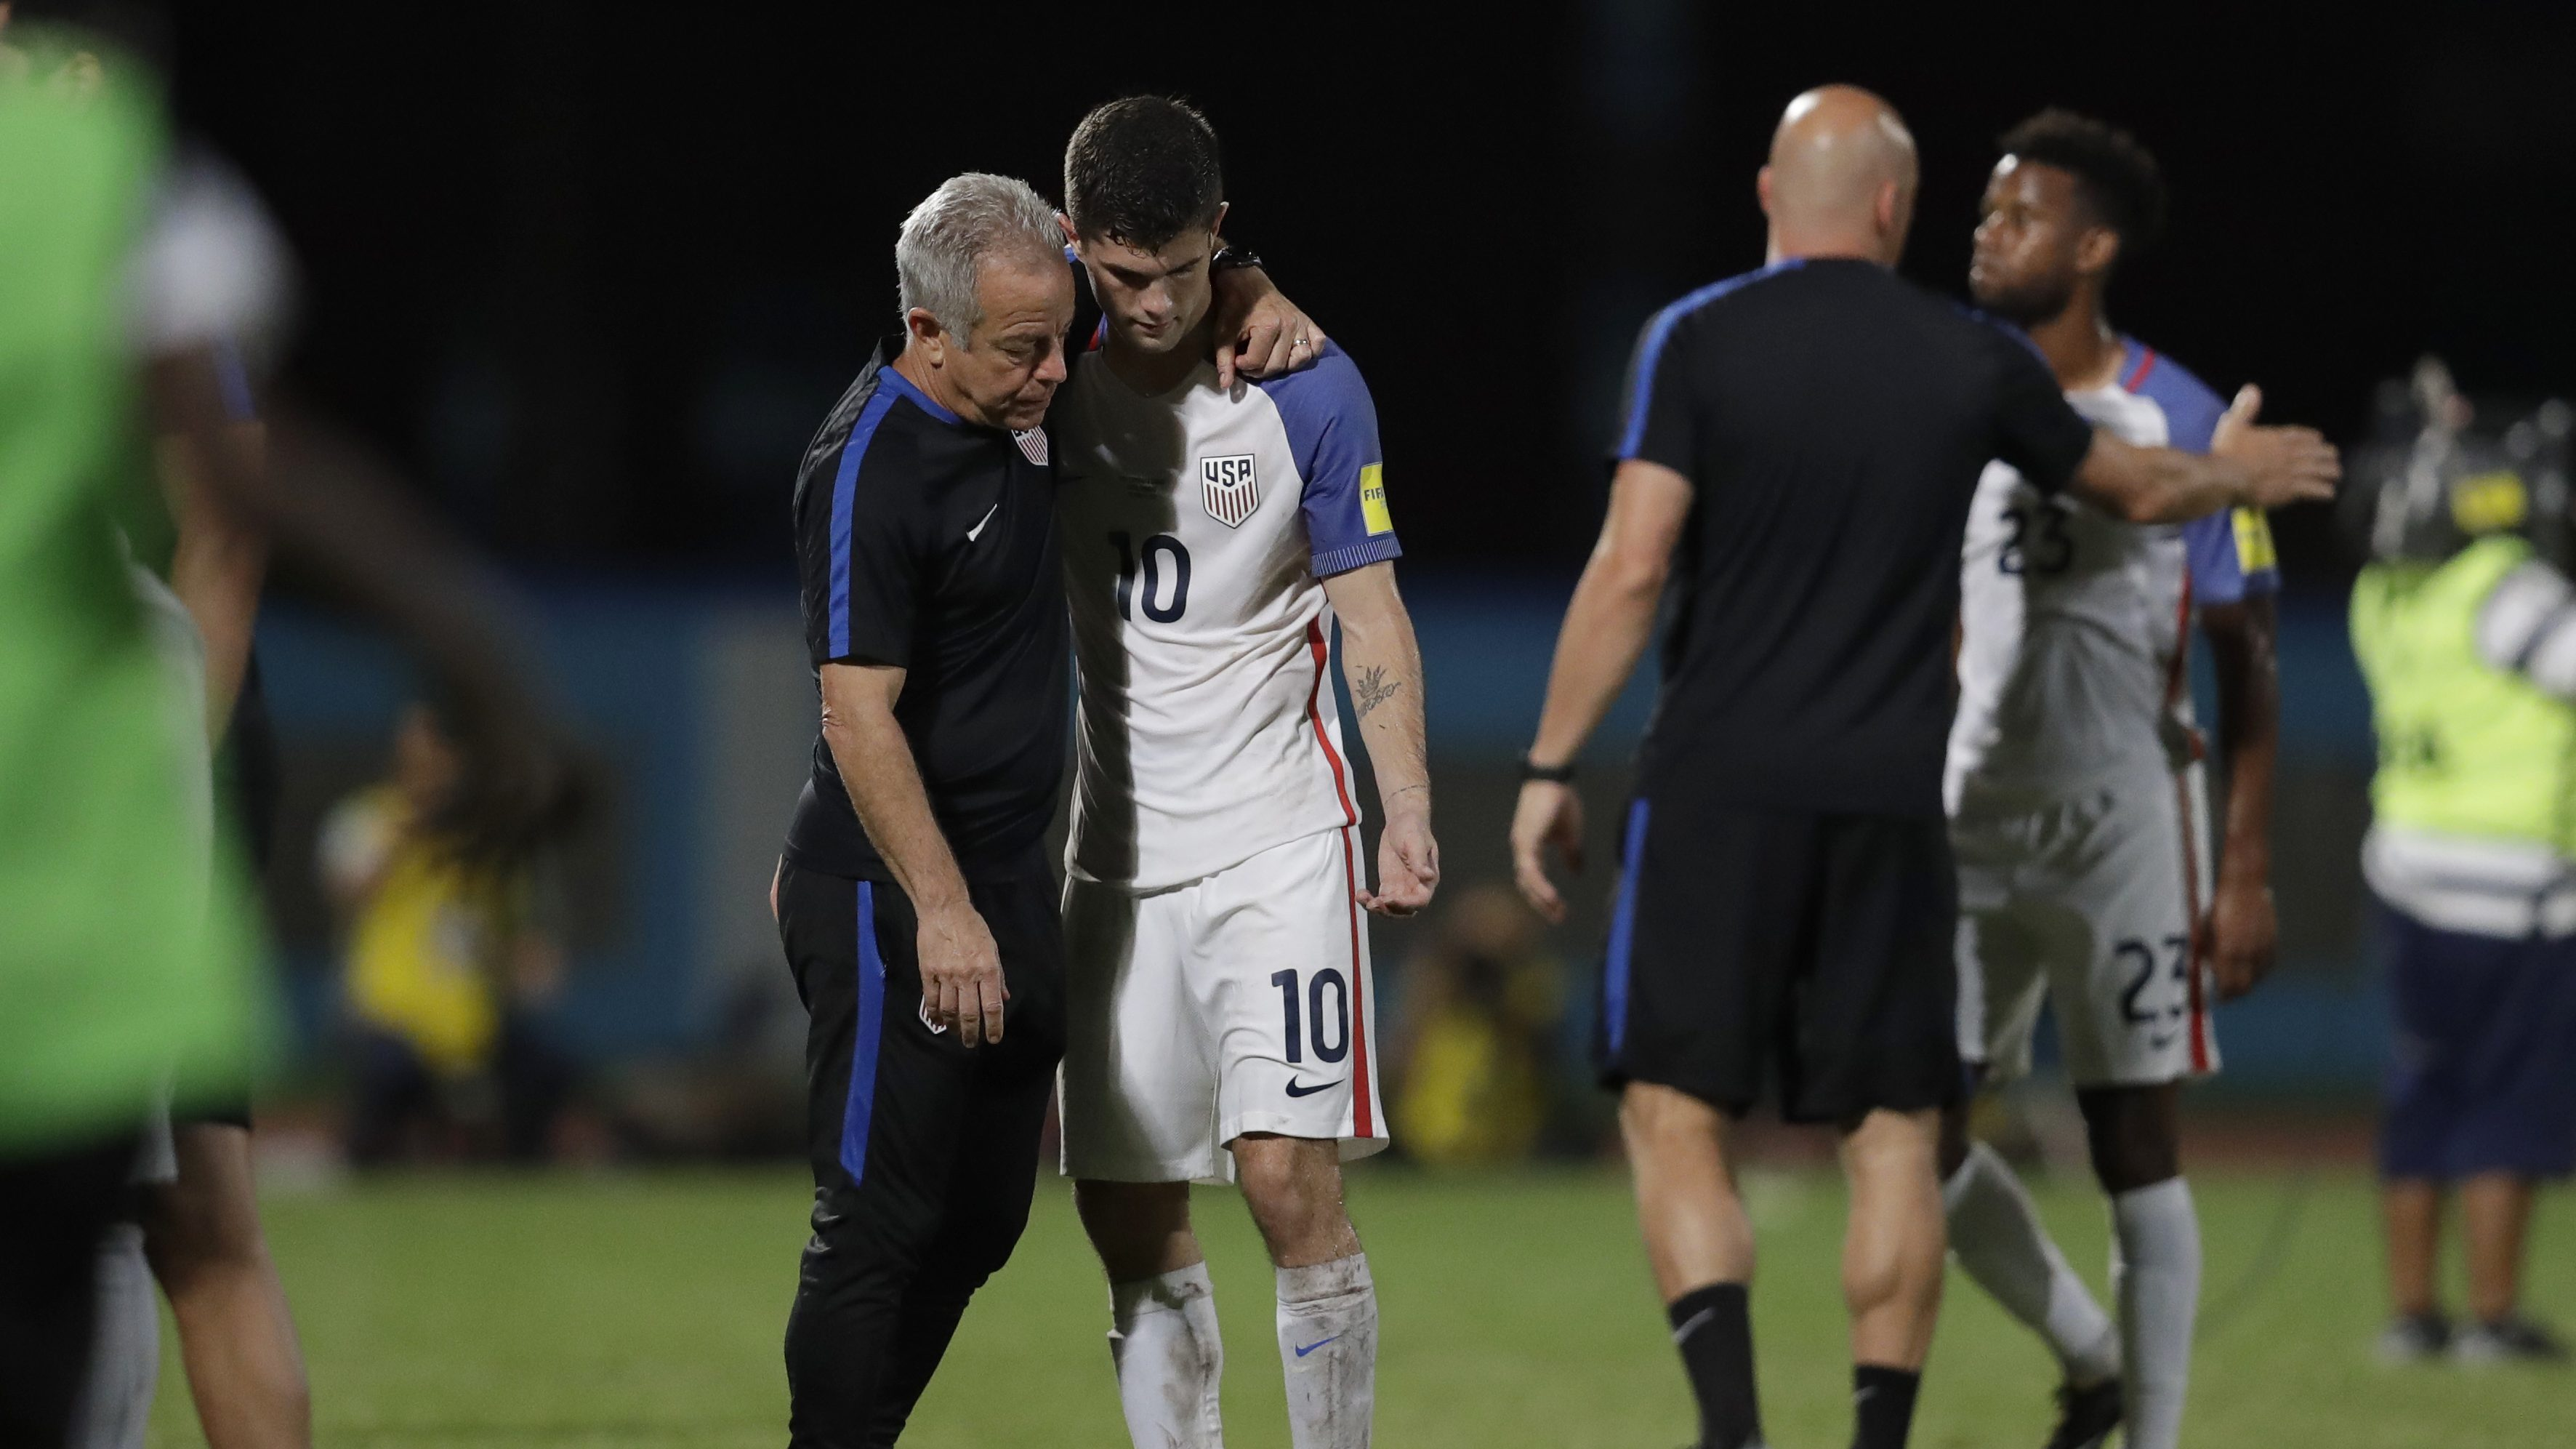 United States' Christian Pulisic, (10) is comforted after losing 2-1 against Trinidad and Tobago during a 2018 World Cup qualifying soccer match in Couva, Trinidad, Tuesday, Oct. 10, 2017.